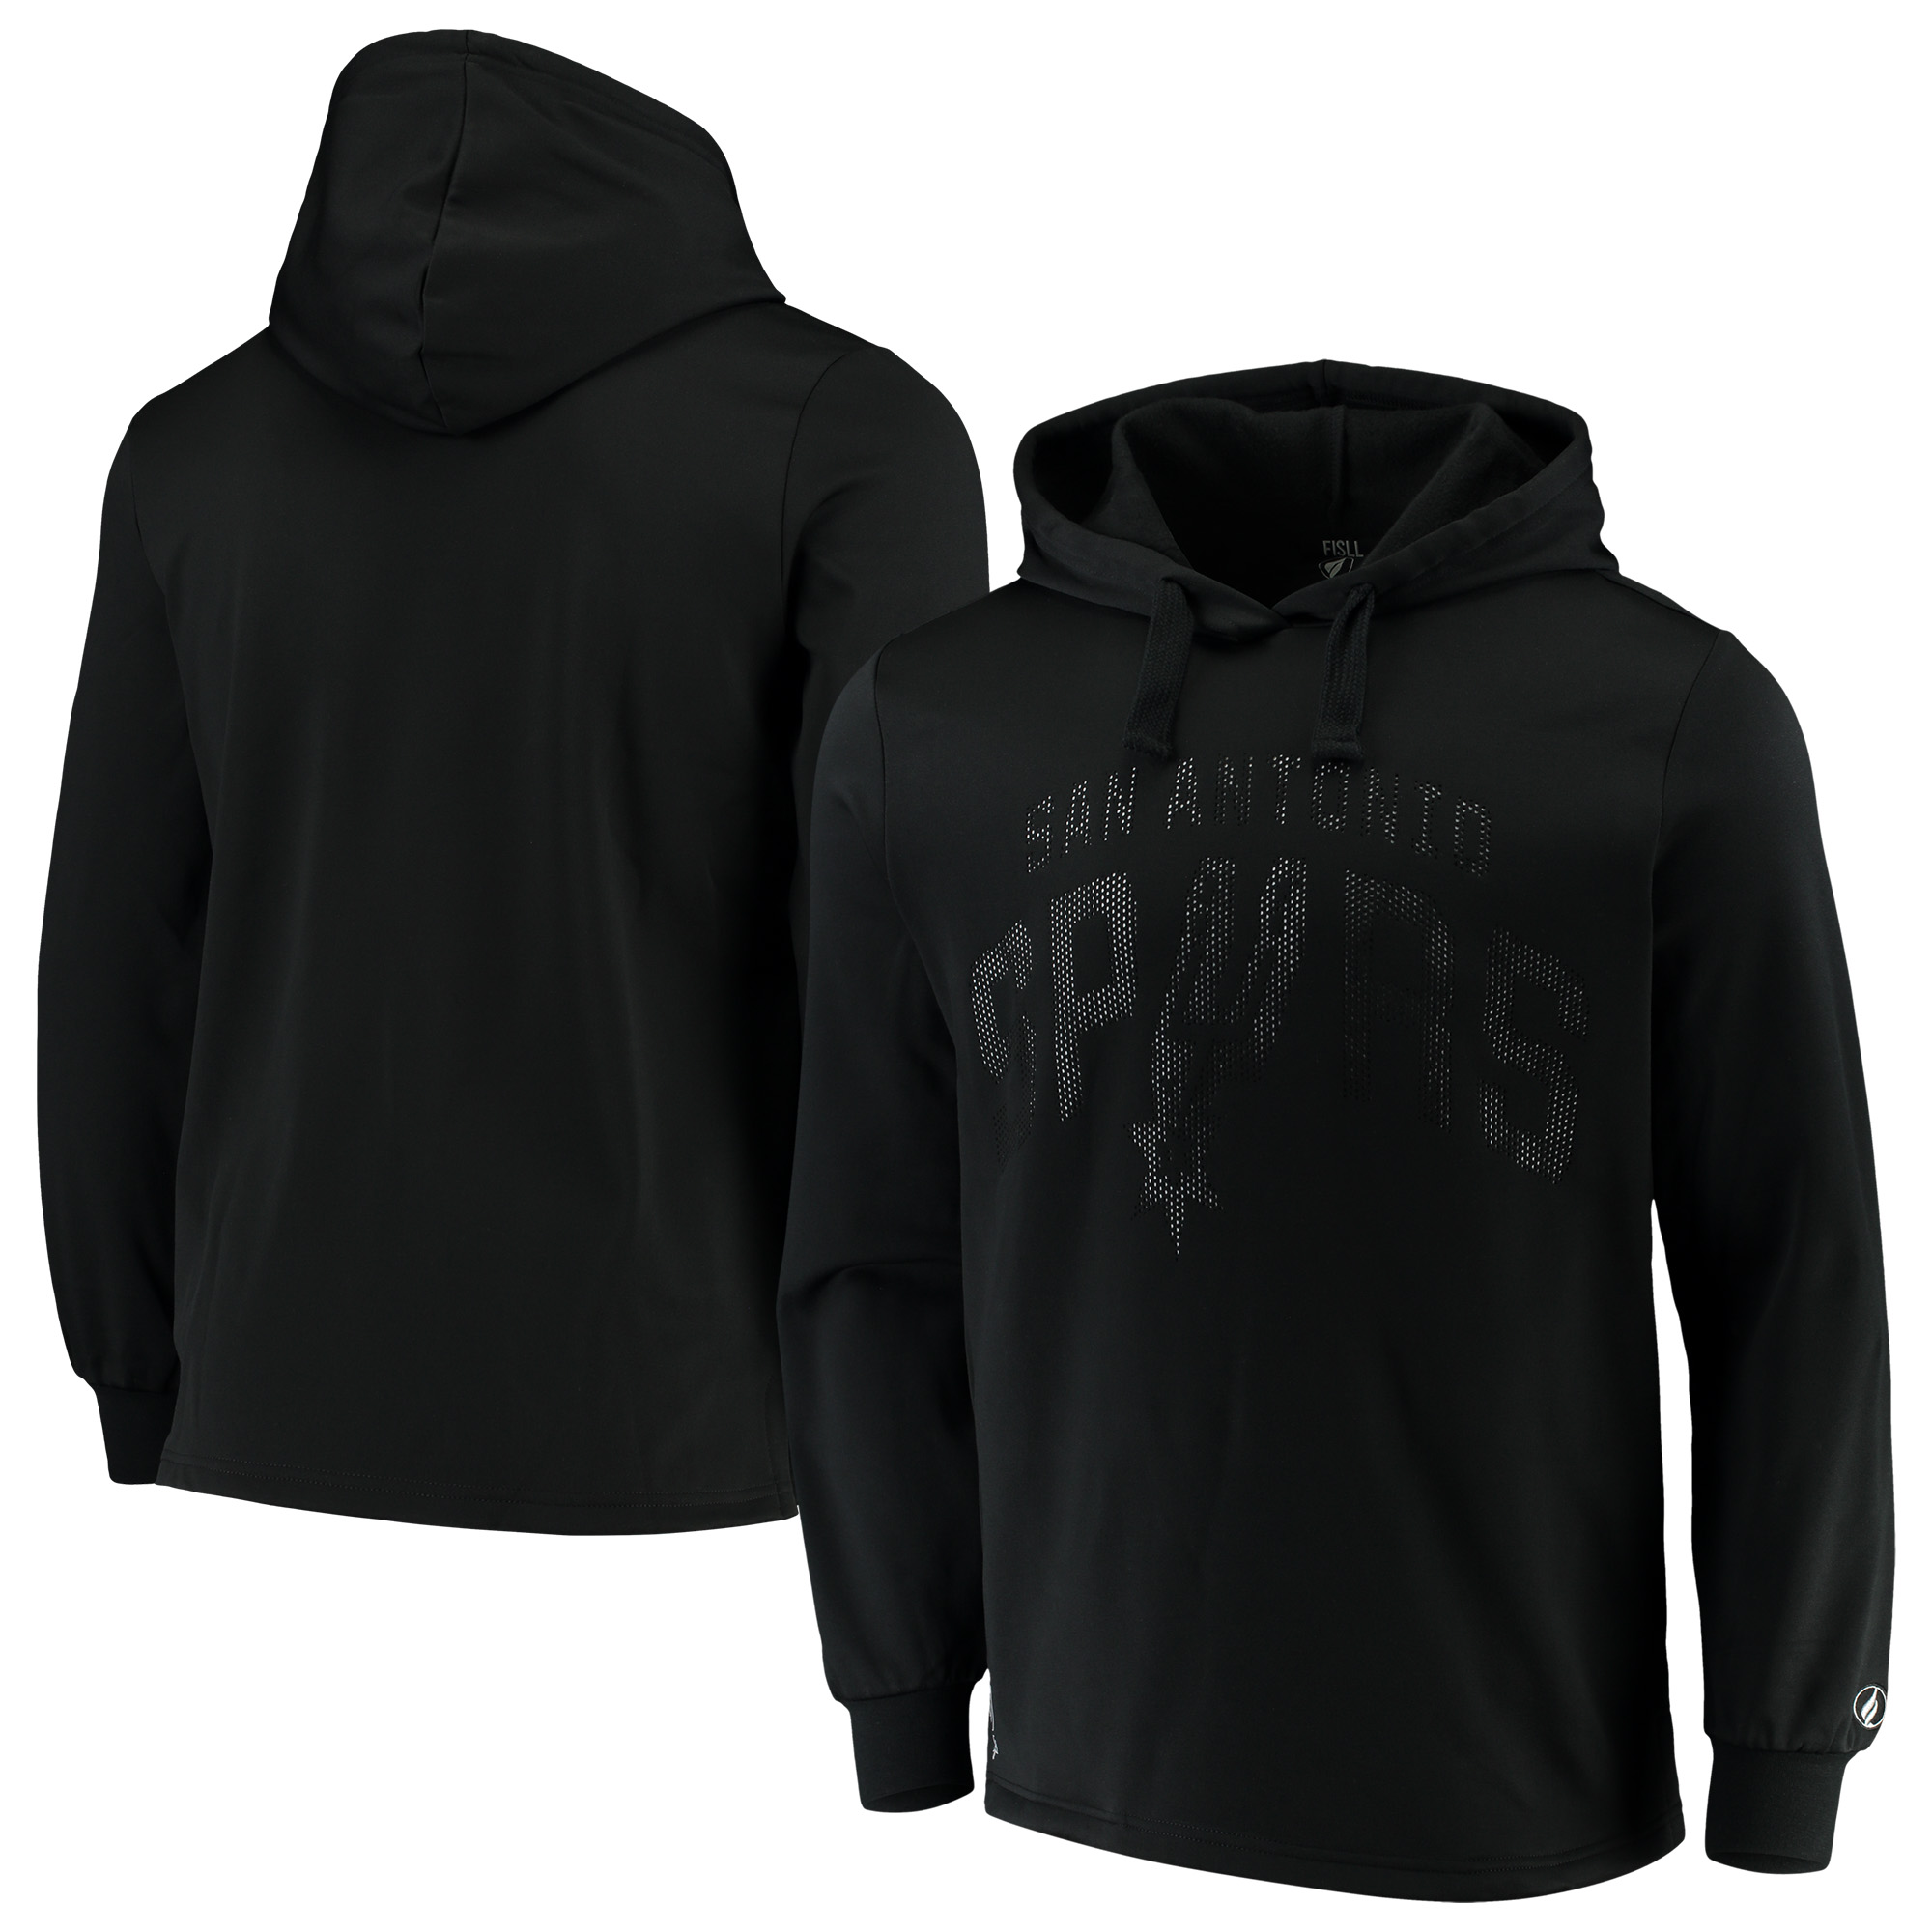 San Antonio Spurs FISLL Contrast Perforated Poly Fleece Pullover Hoodie - Black